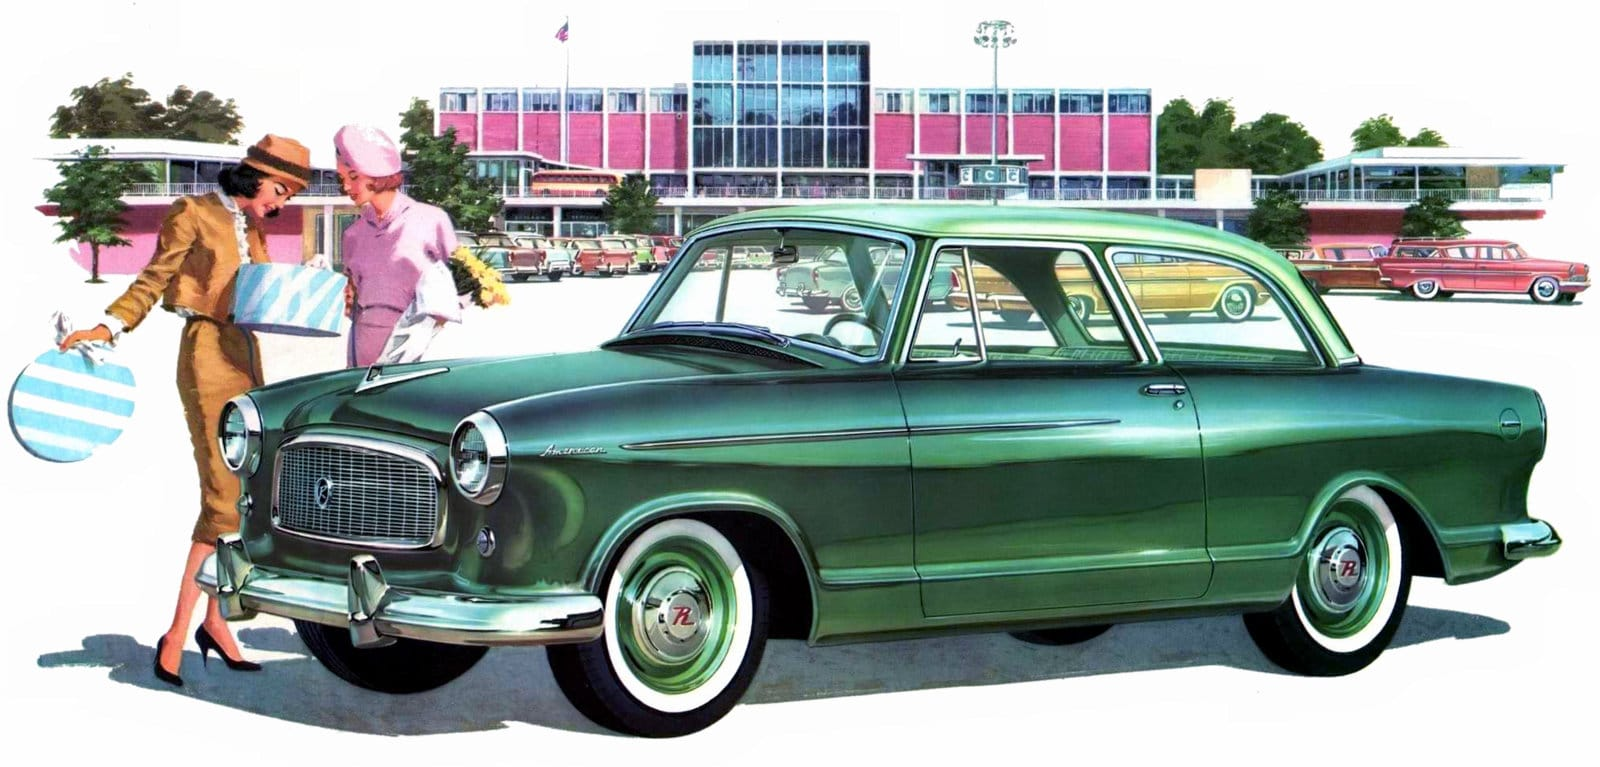 1960 Rambler American Super Club Sedan - Classic cars from the sixties